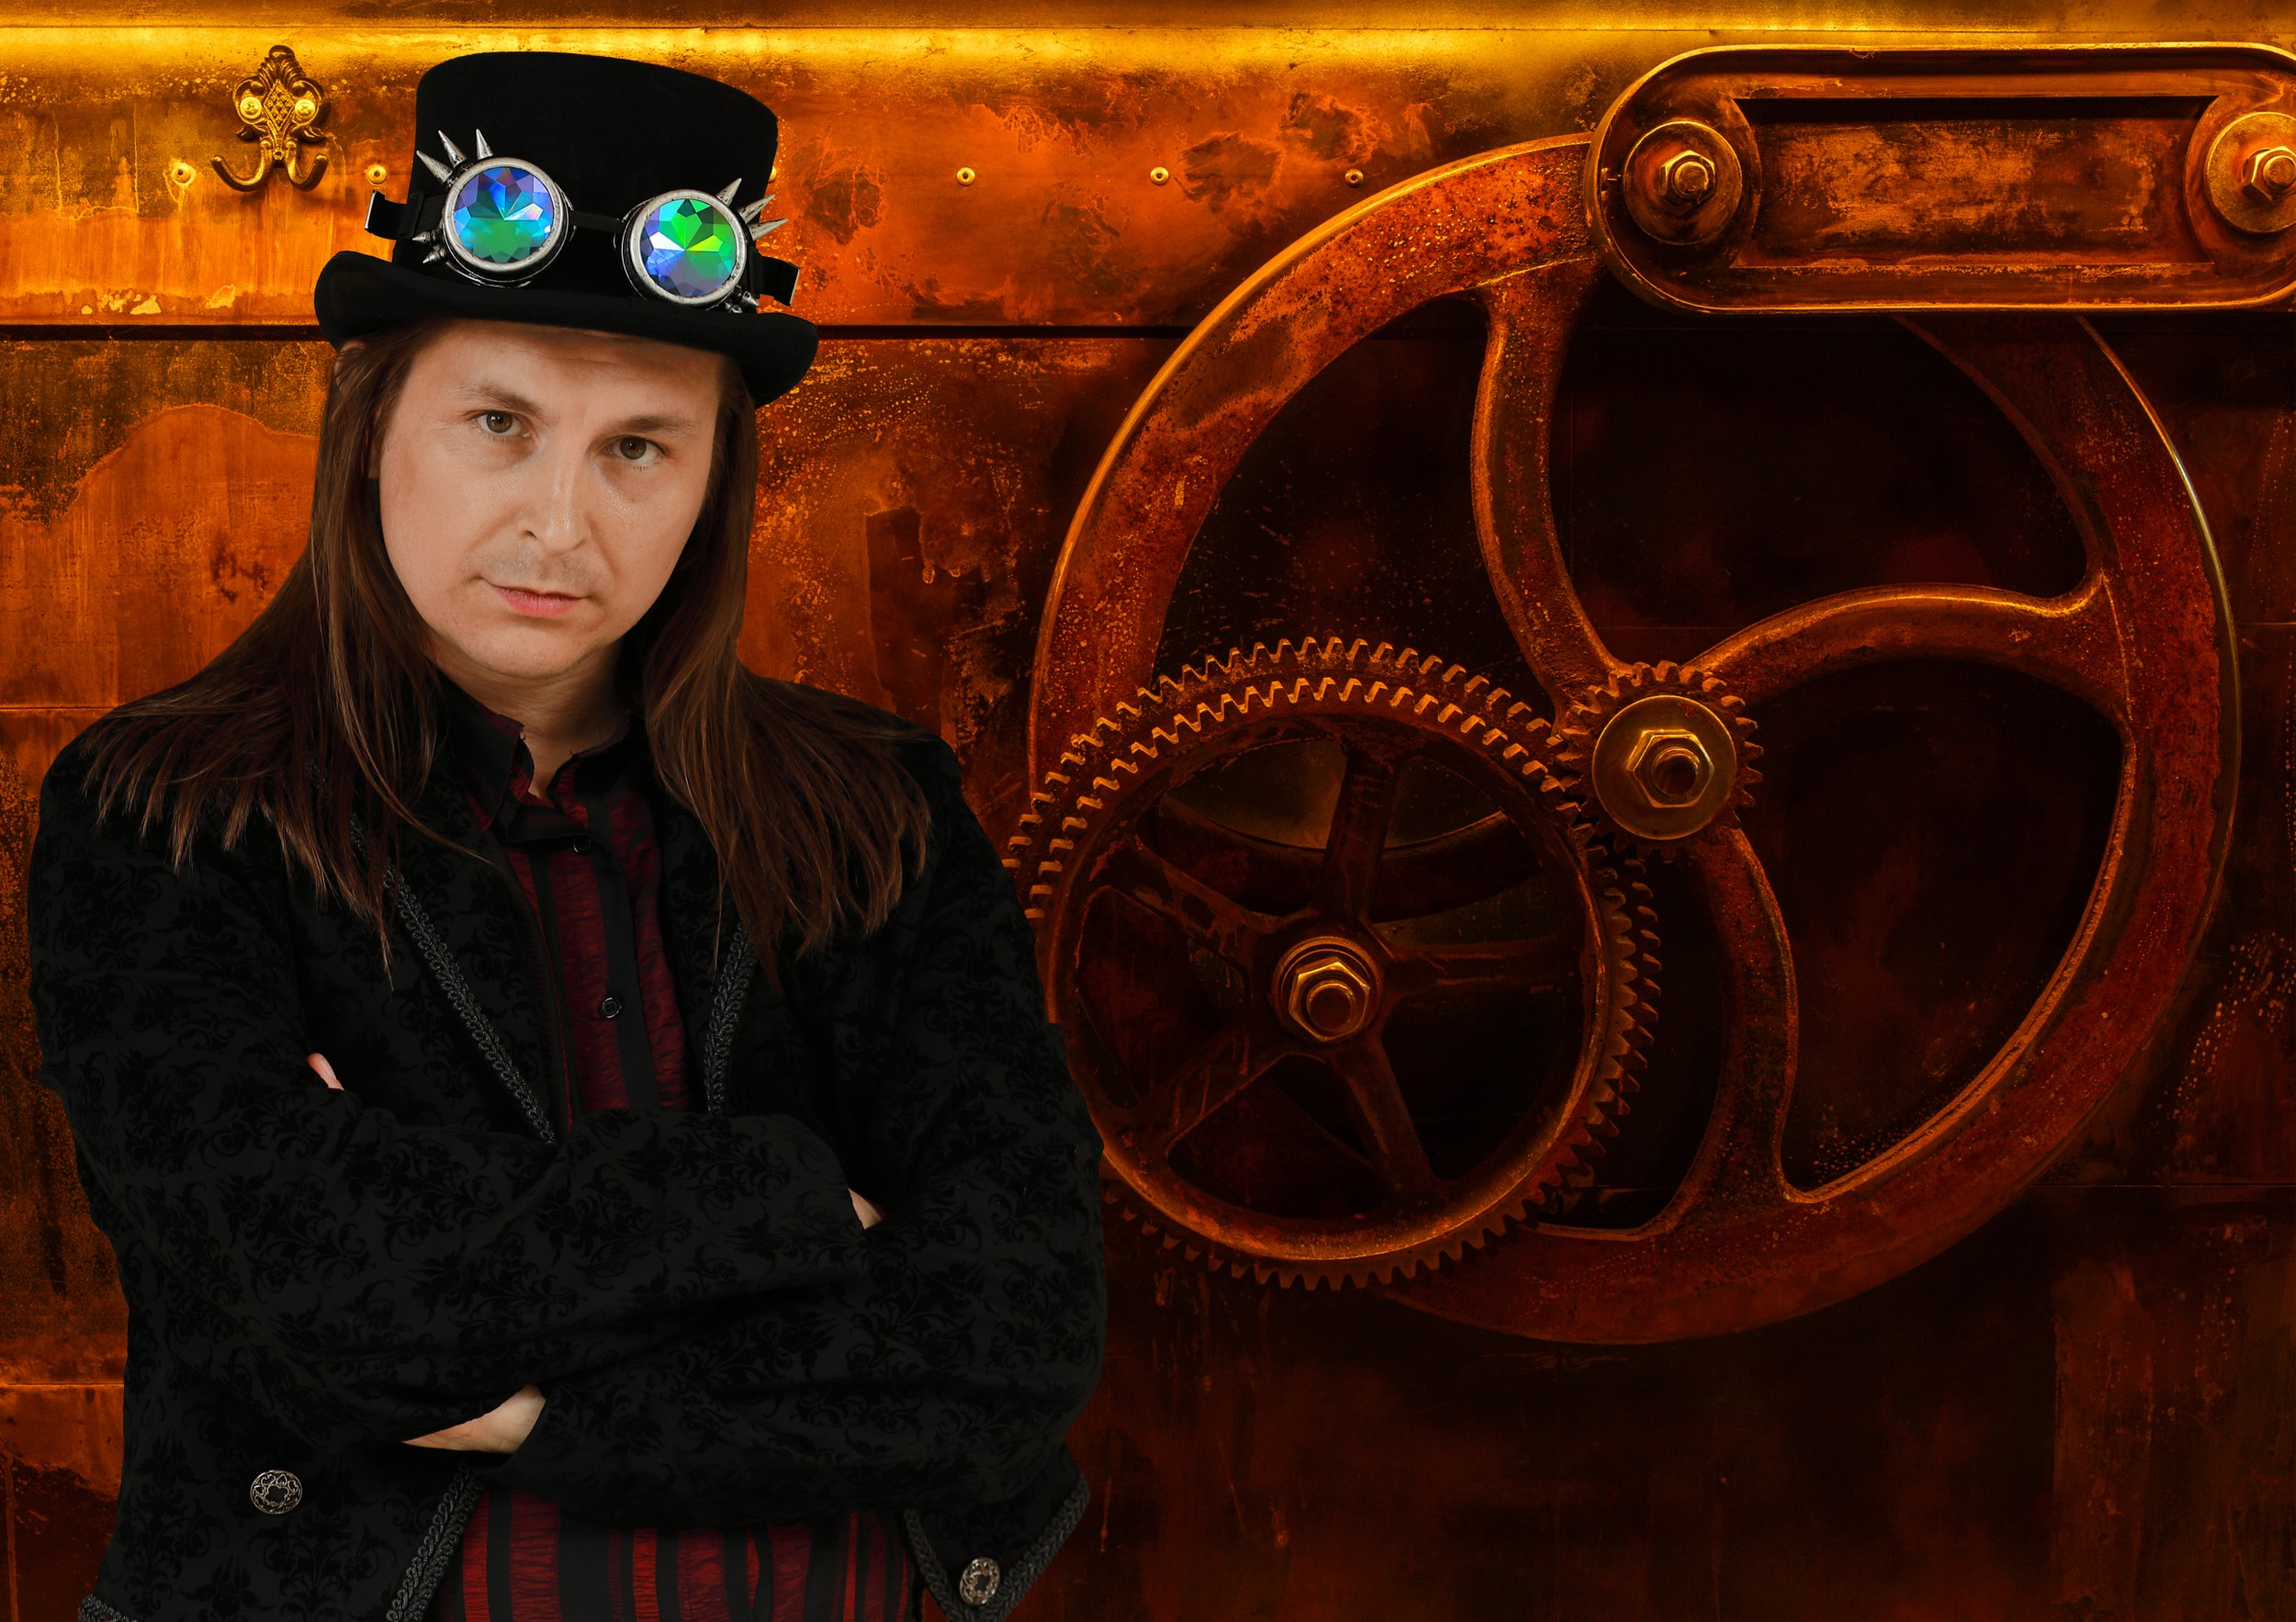 Lord Charles' New Steampunk Image